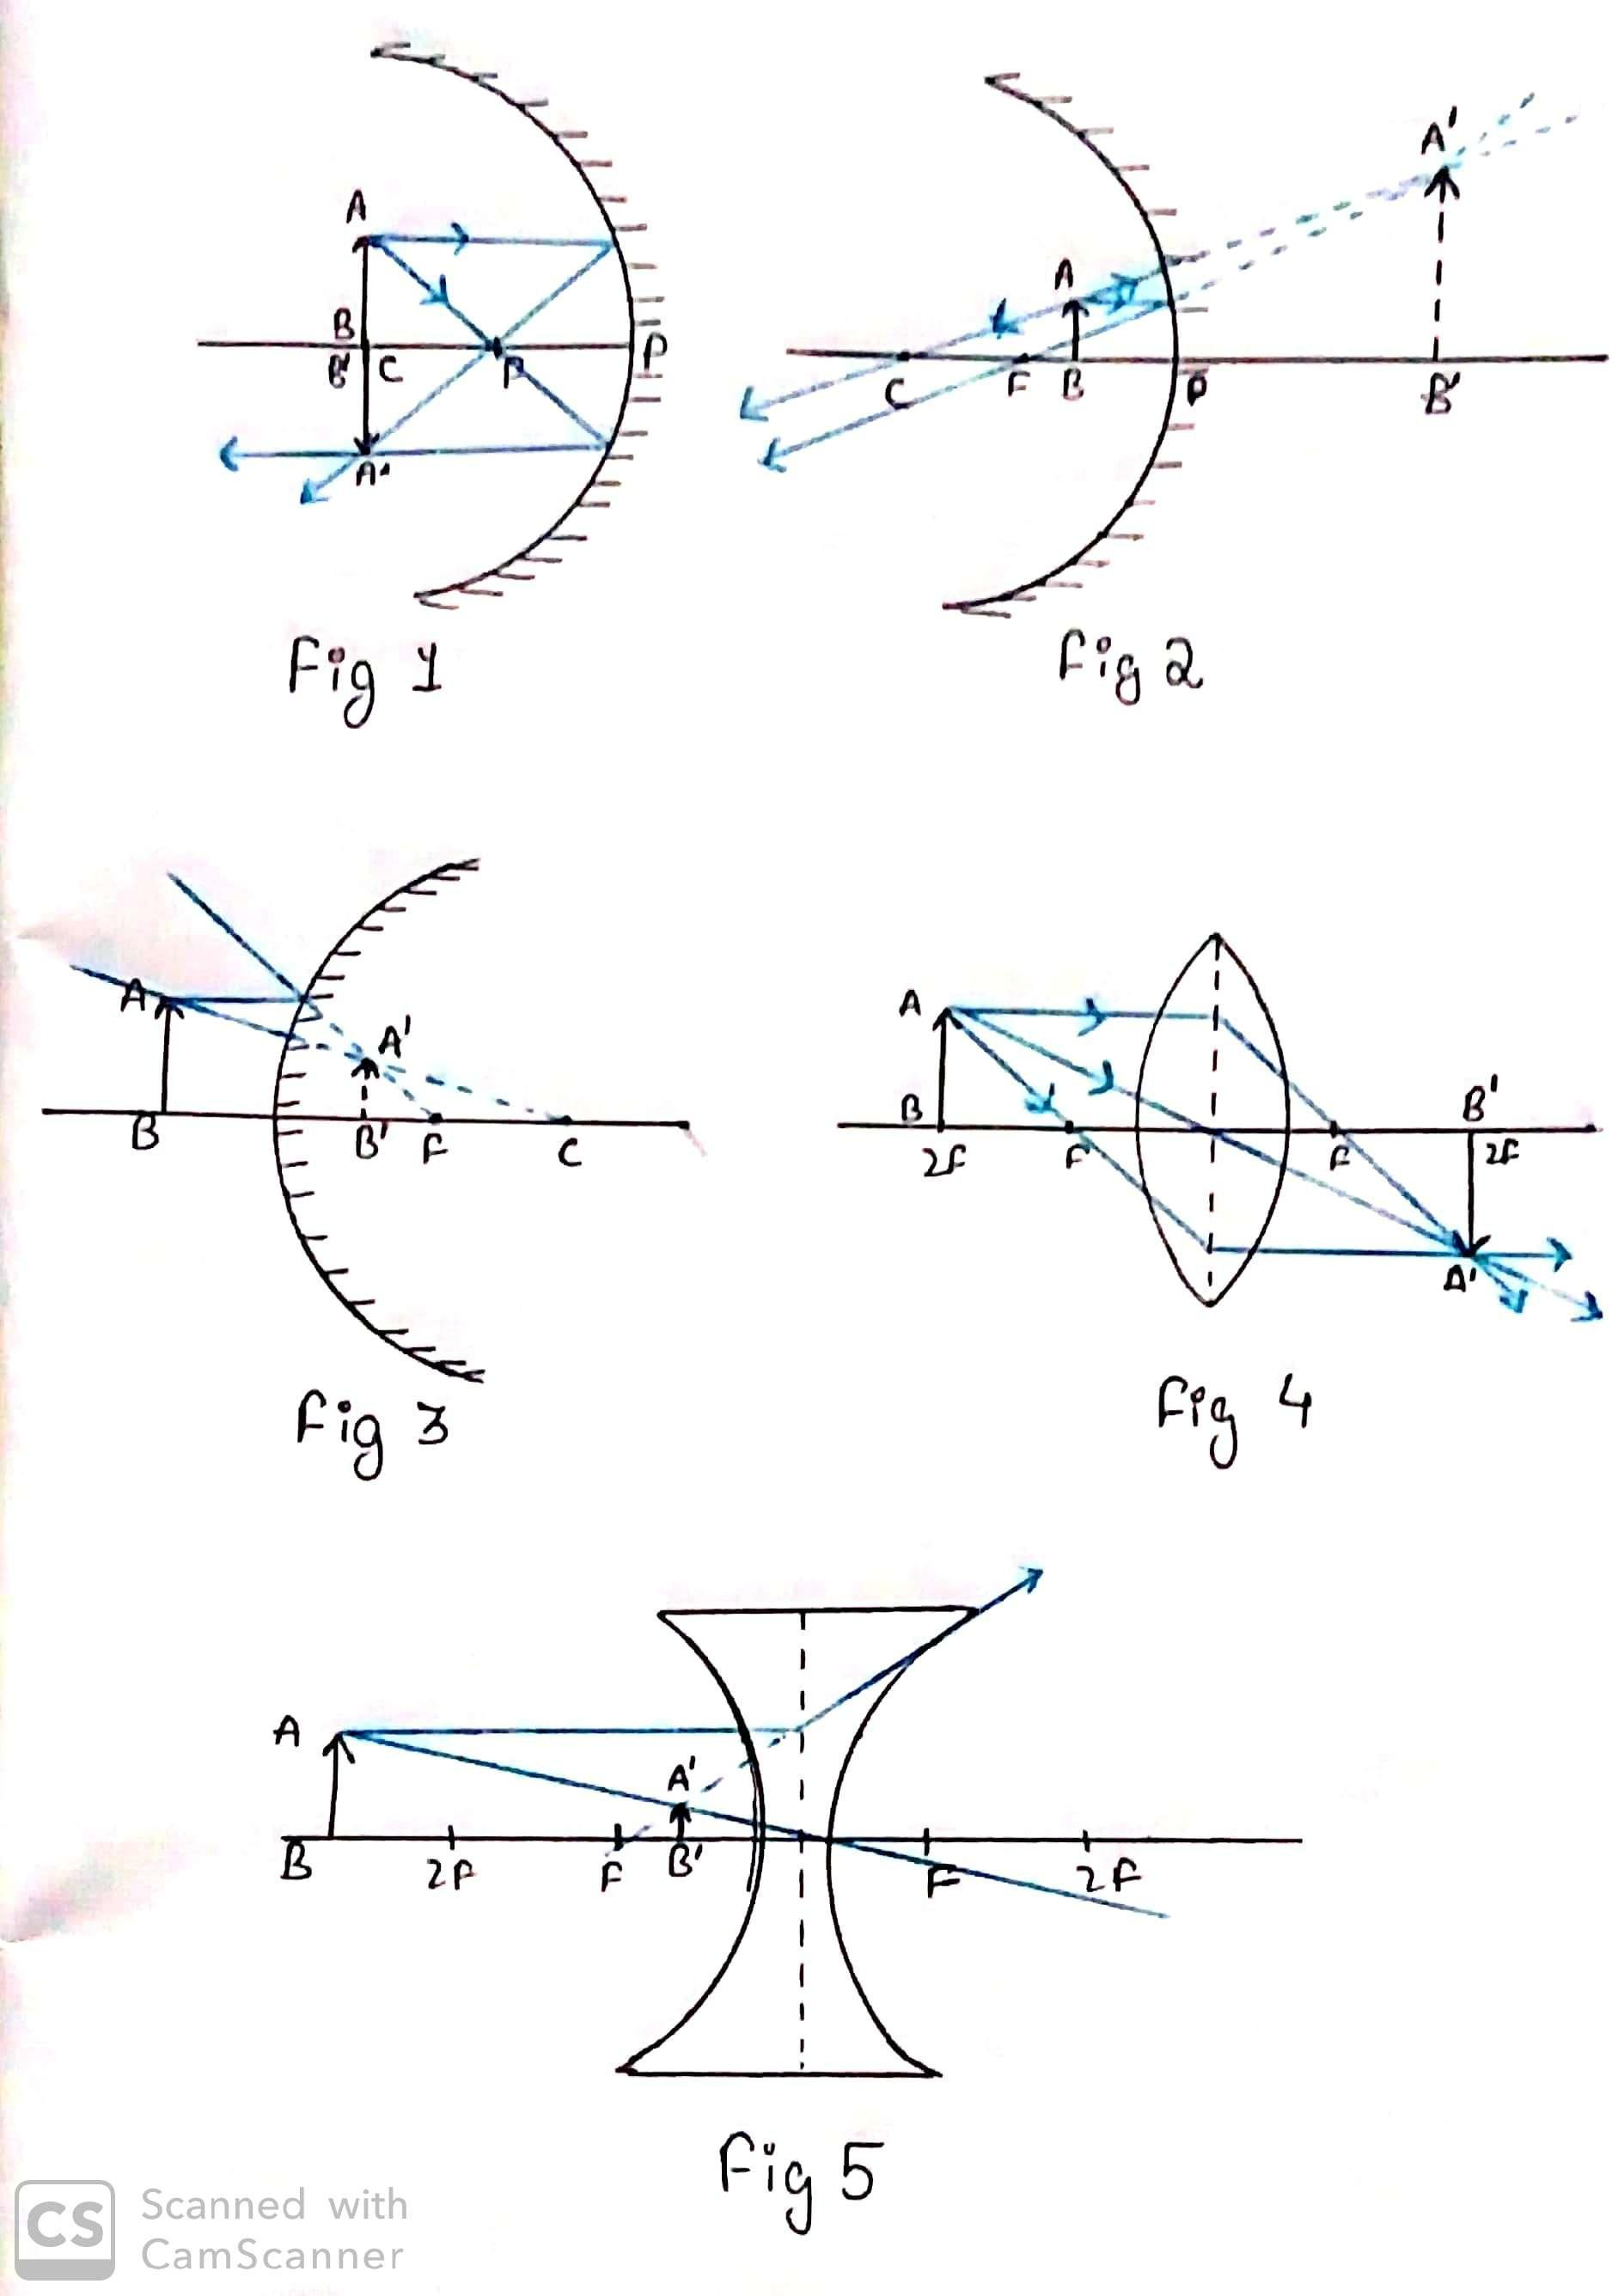 Draw The Ray Diagram In Each Case To Show The Position And